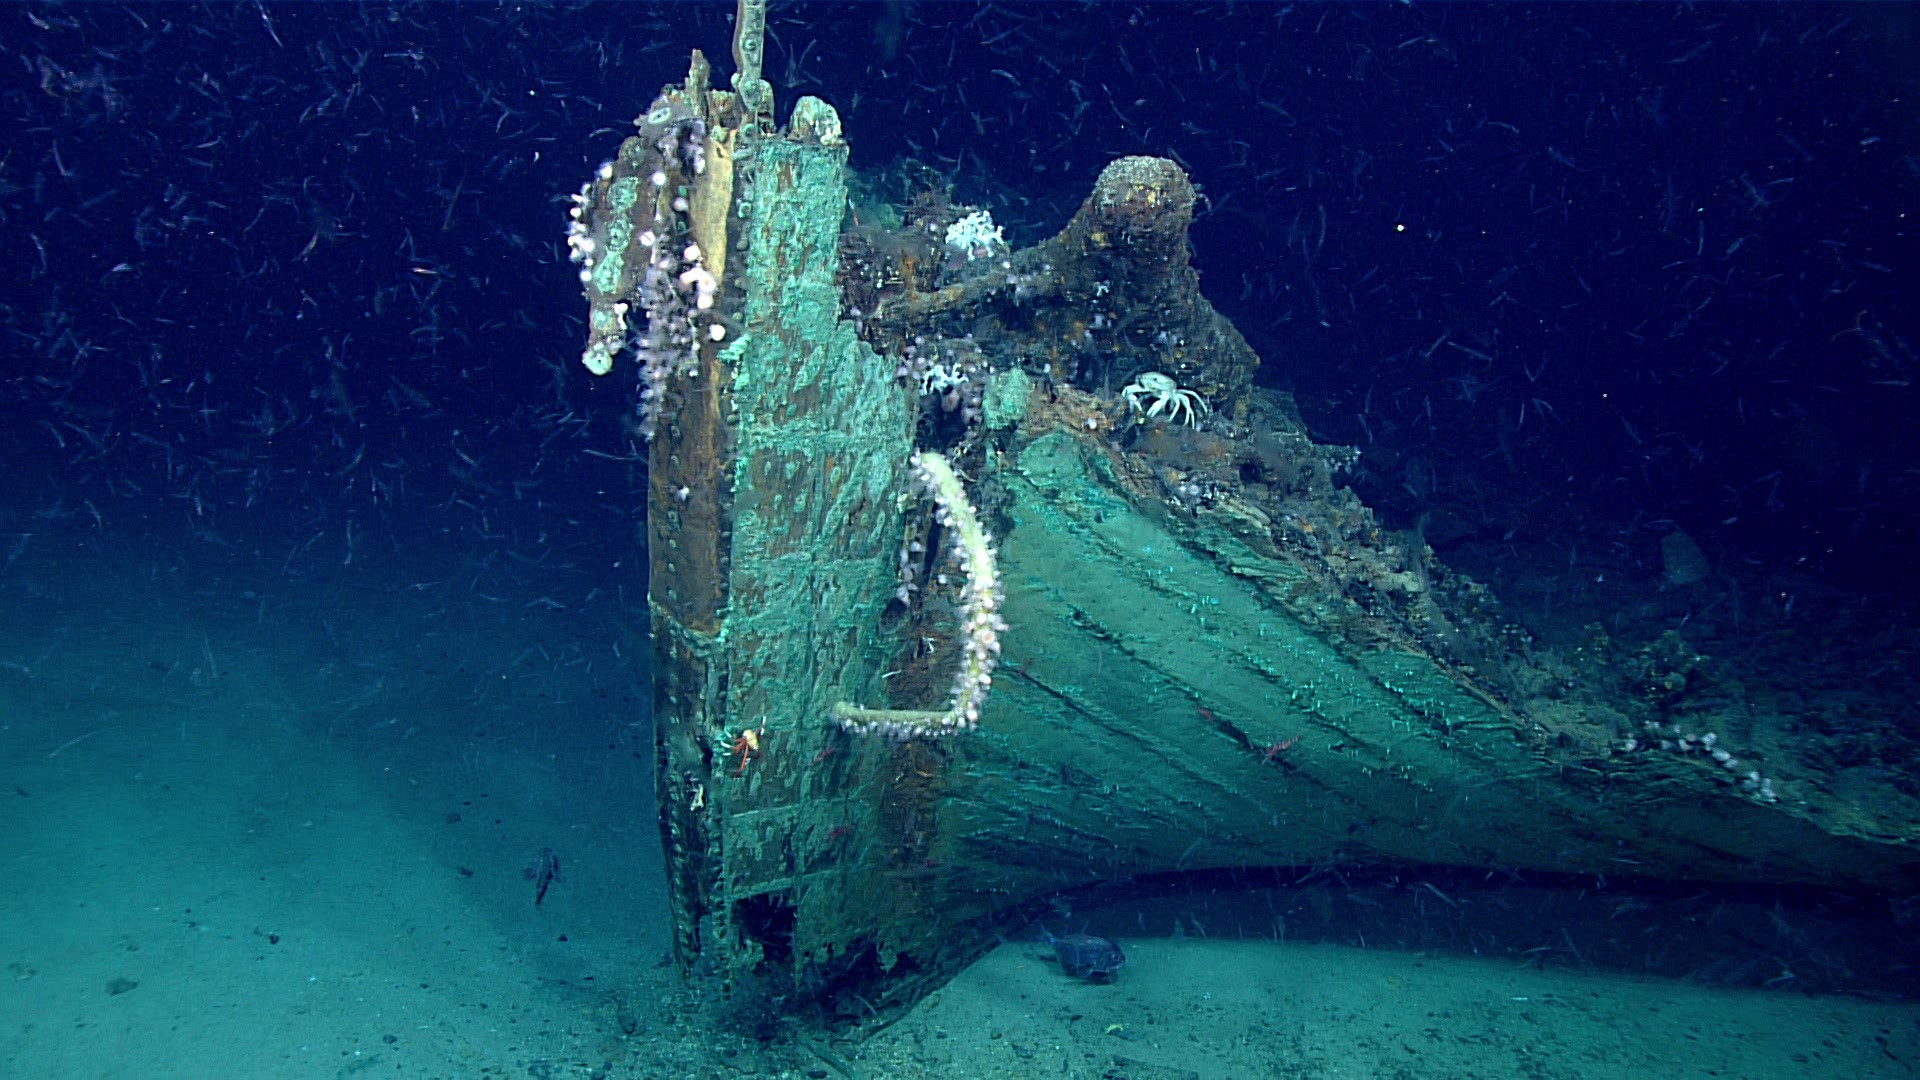 A close-up view of the bow. Marine life is prevalent on the wreck except on the copper sheathing which still retains its antifouling ability to keep the hull free of marine organism like Teredo navalis (shipworm) that would otherwise burrow into the wood  (Foto: NOAA)